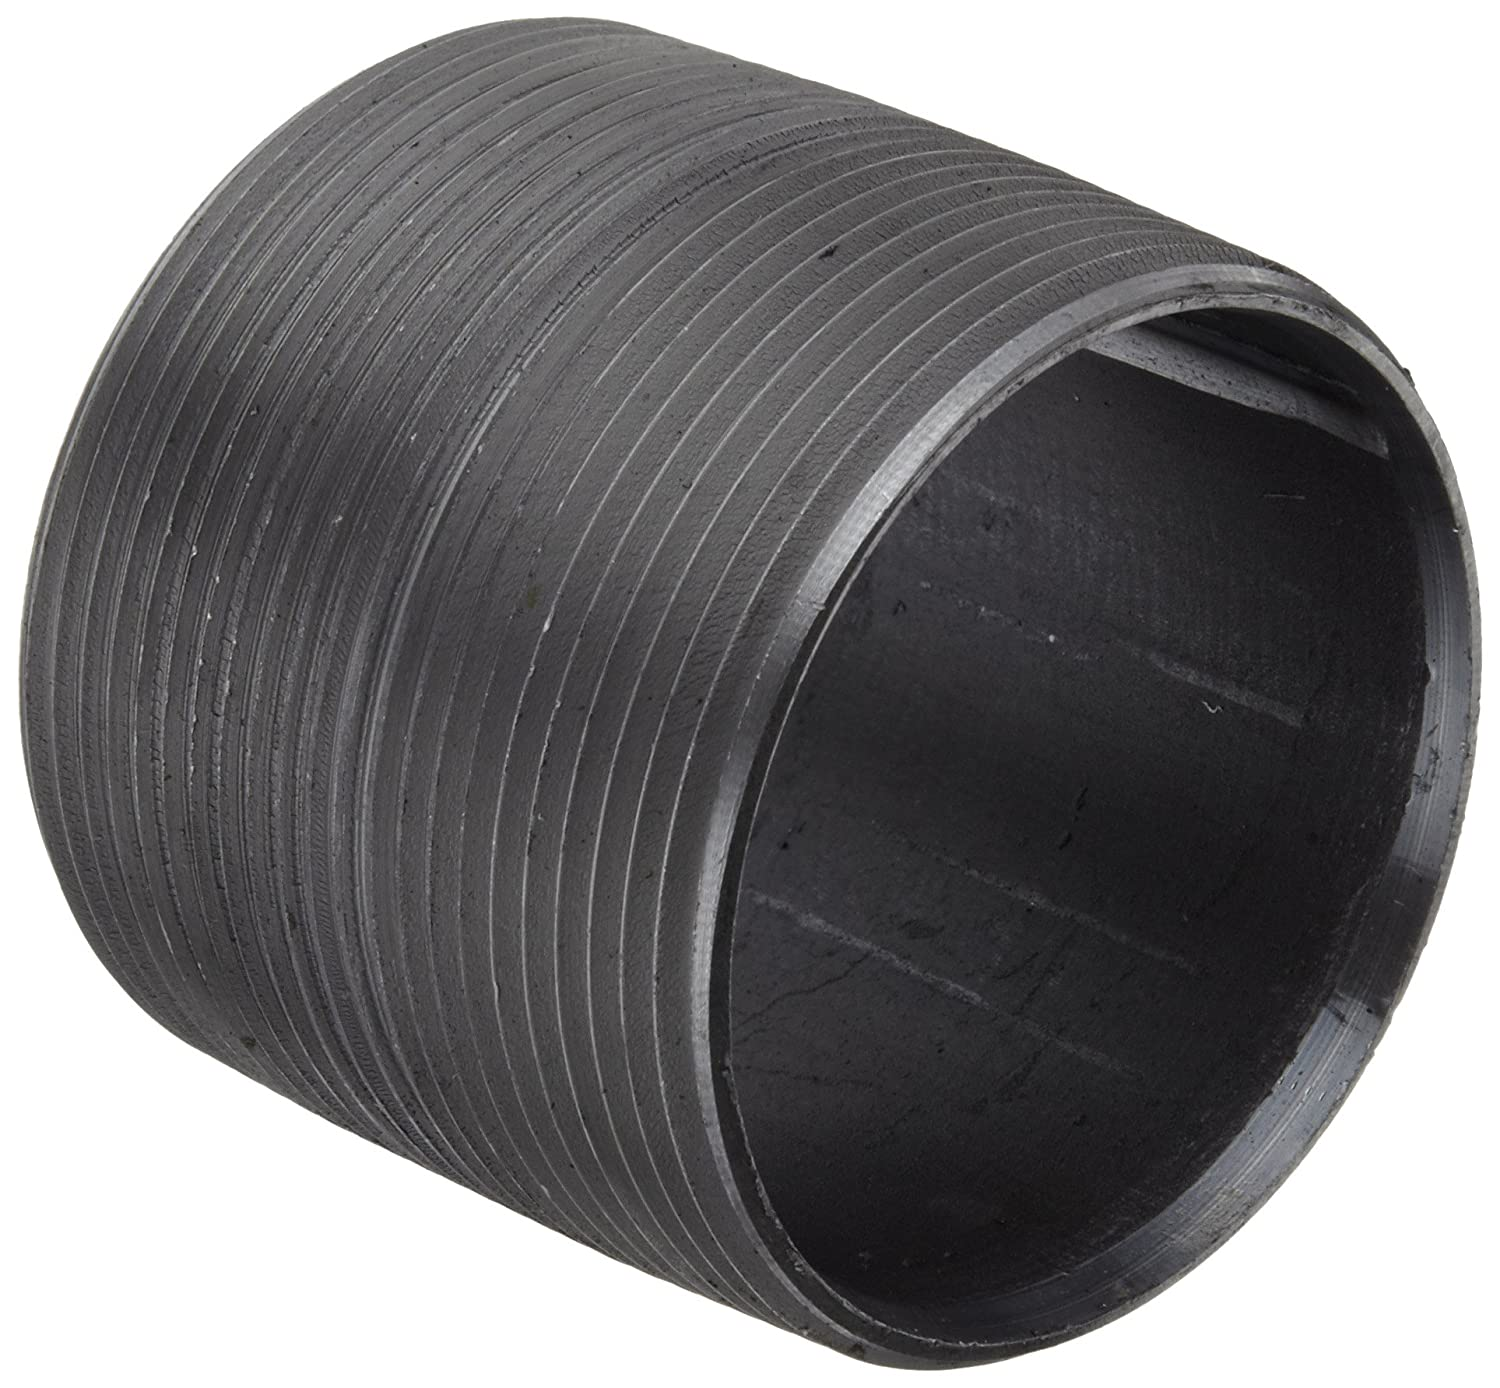 2 NPT Male Dixon CN200 Carbon Steel Pipe and Welding Fitting 2 Length 2 NPT Male 2 Length Dixon Valve /& Coupling Close Nipple